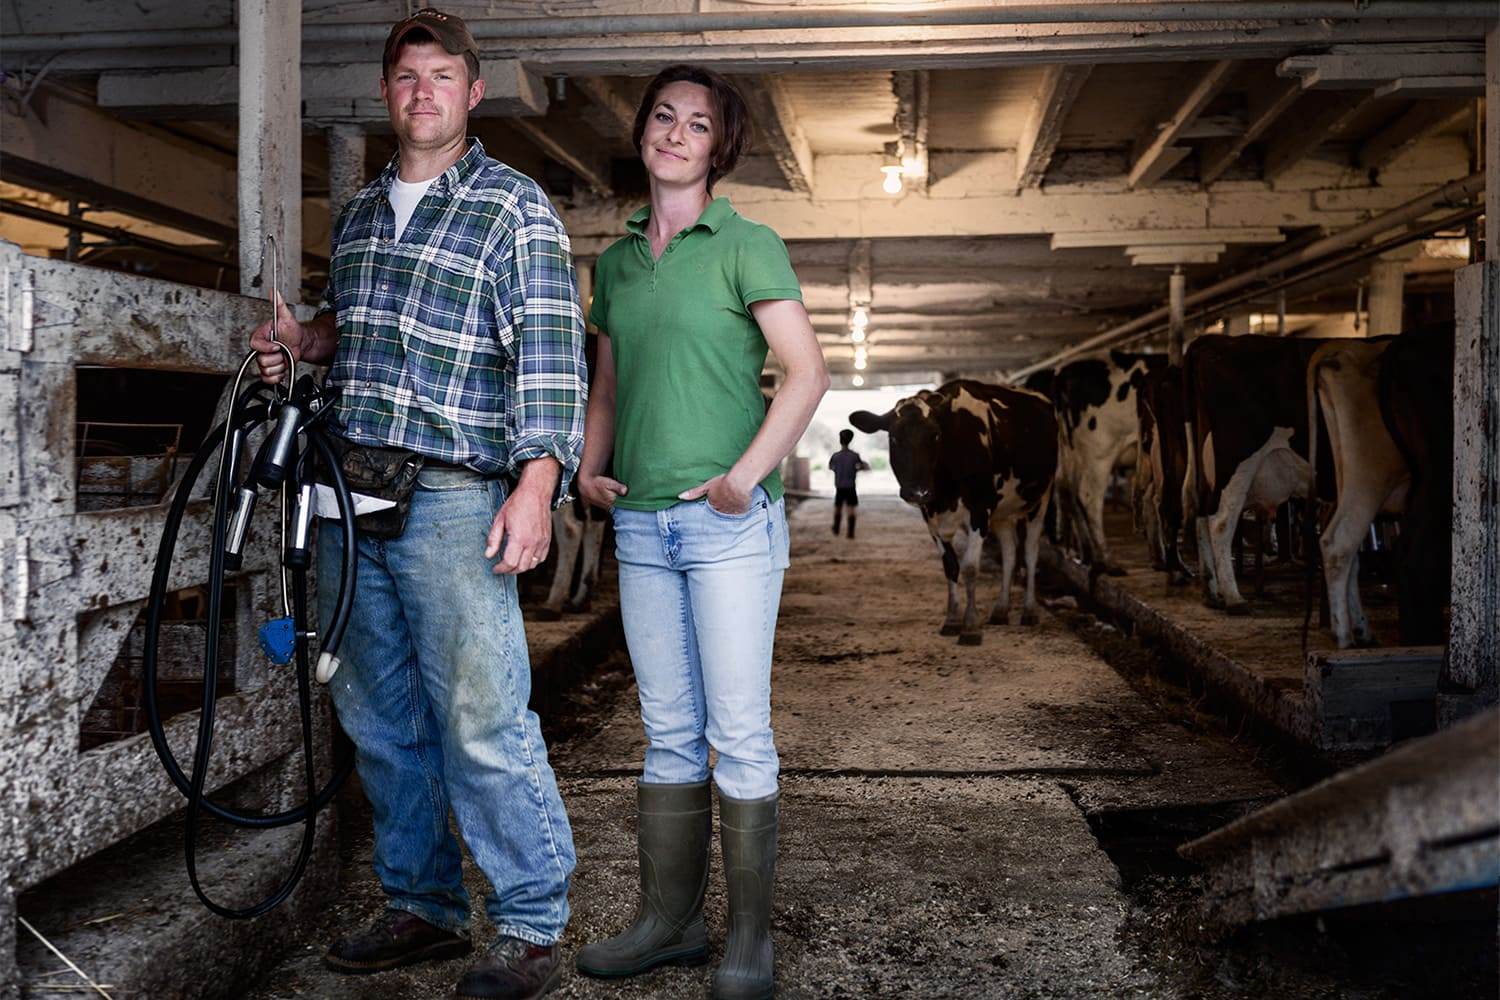 Male-Female-Dairy-Farmers-portrait-barn-with-cows-Rod-McLean